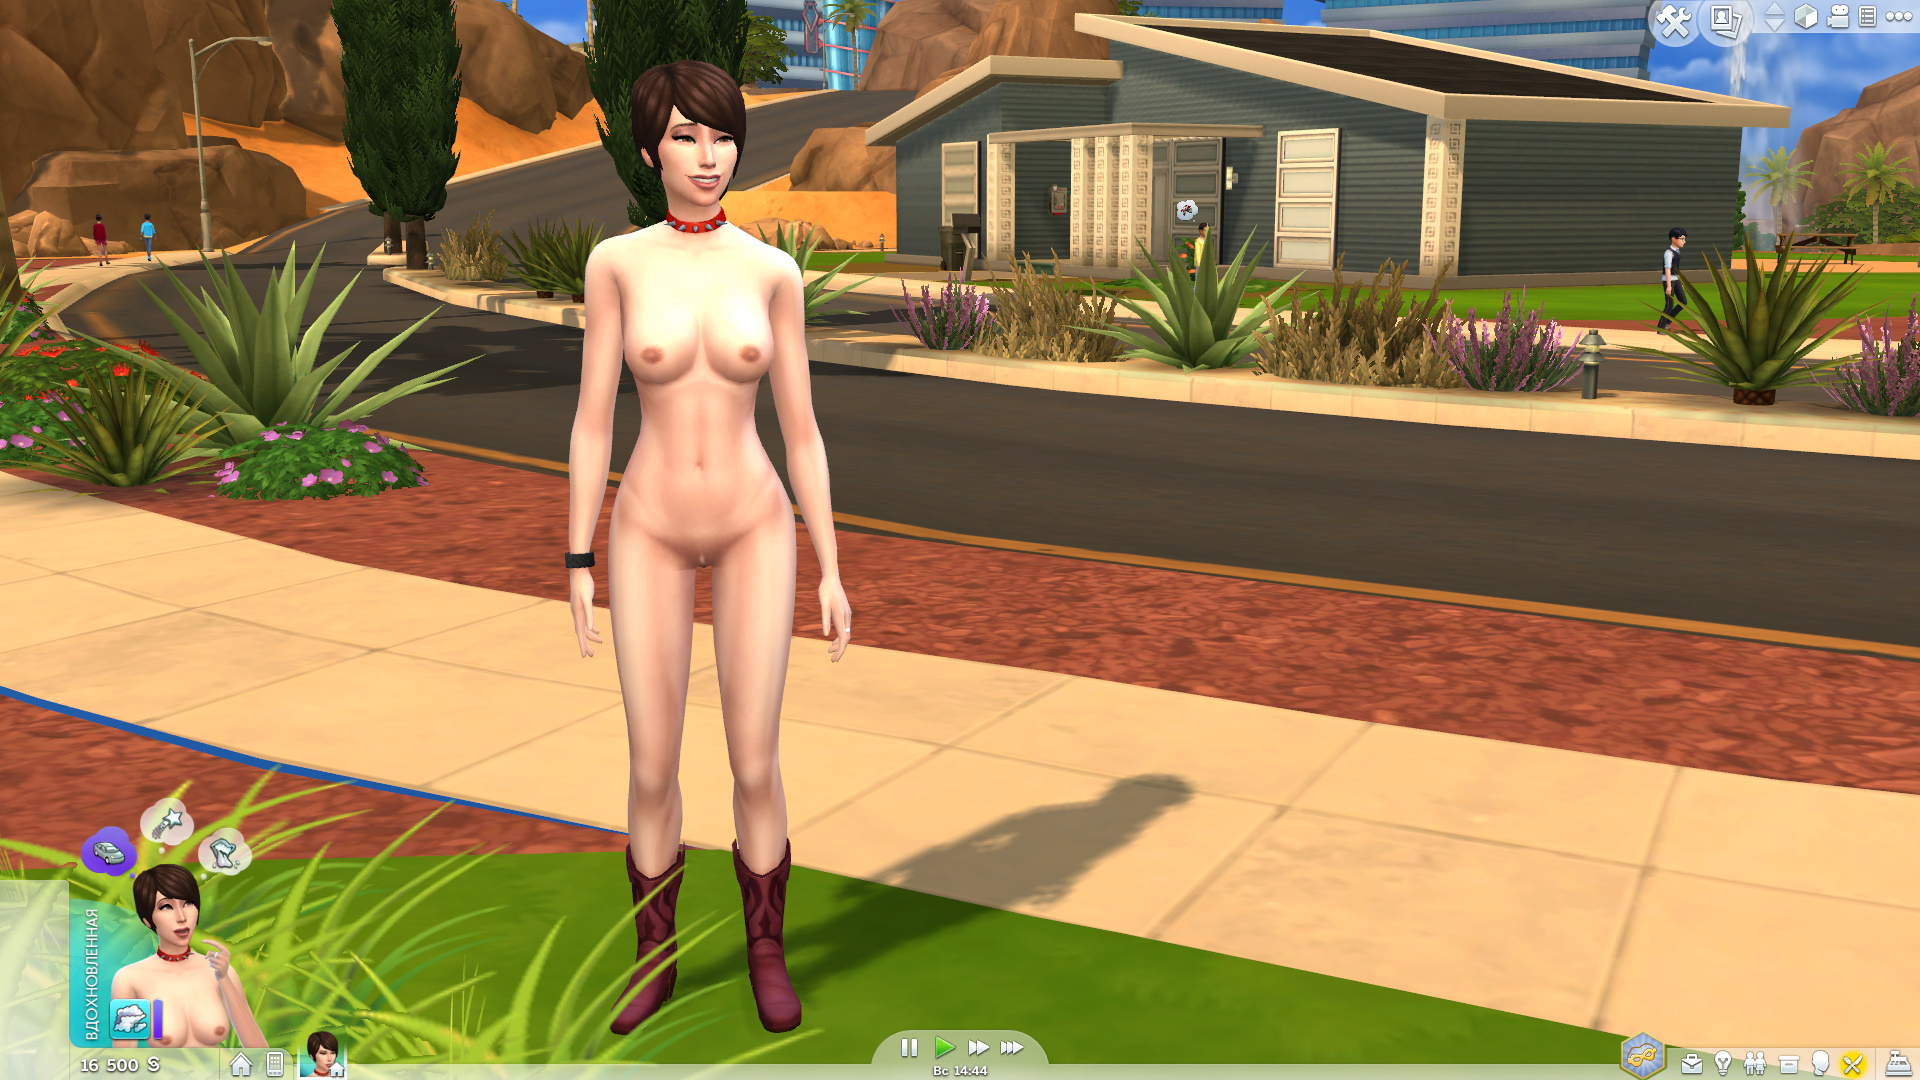 Nude mod do the sims 4 pron pic